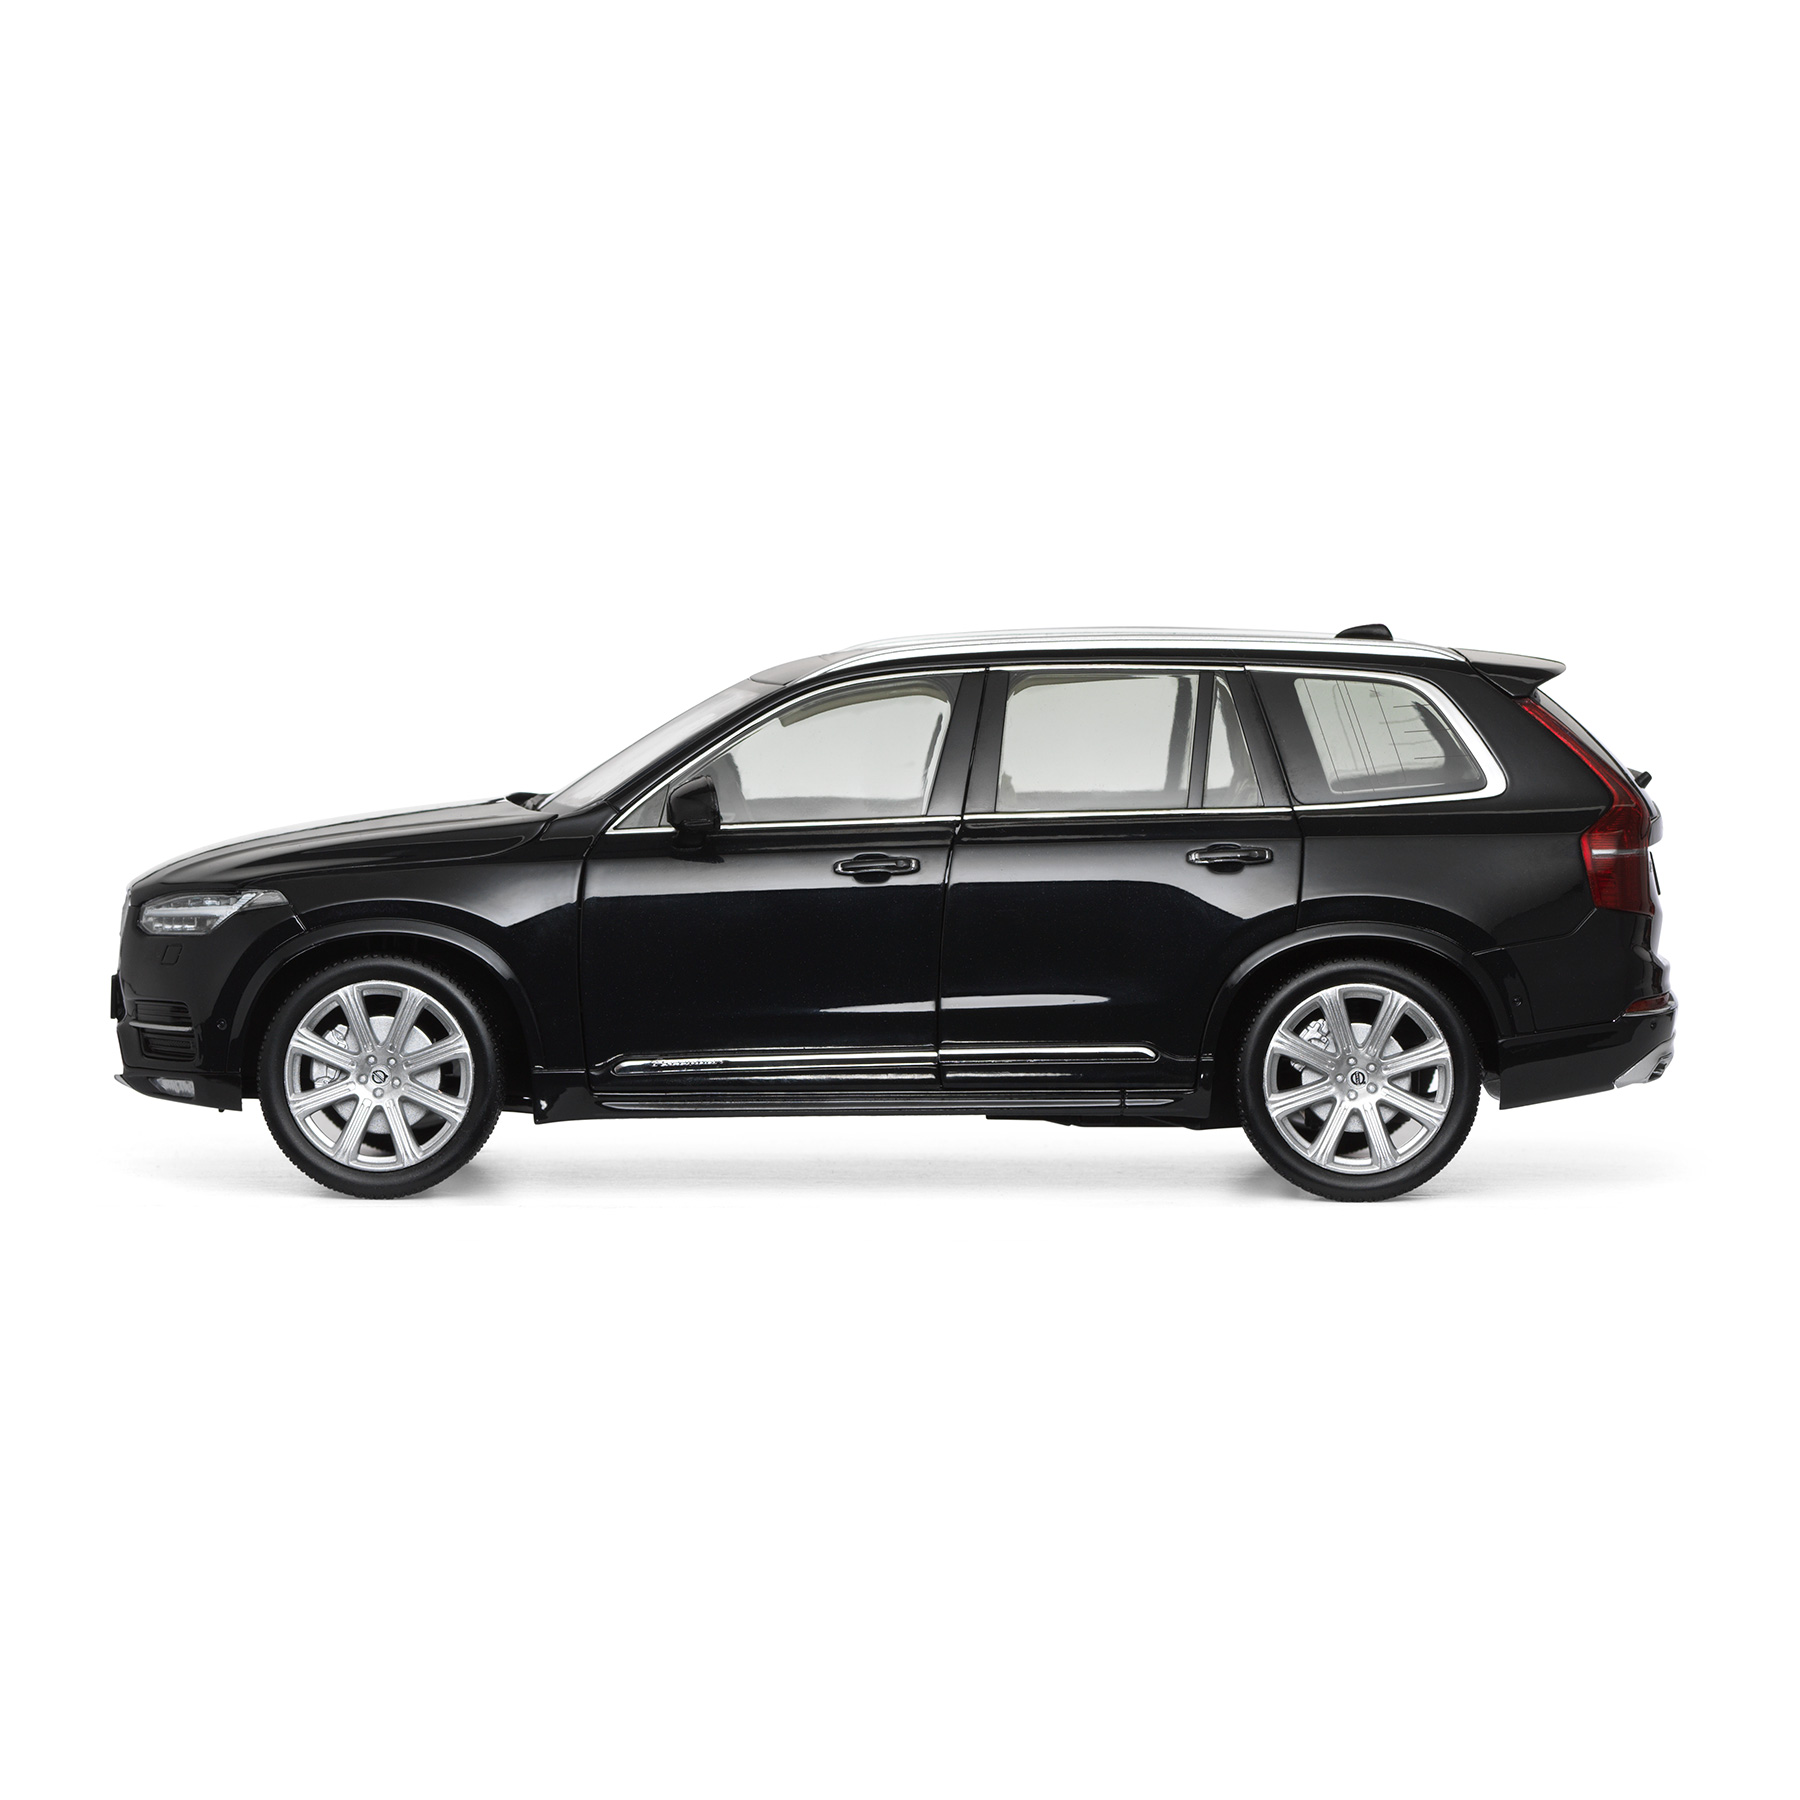 down to with model starting volvo suv news h price new